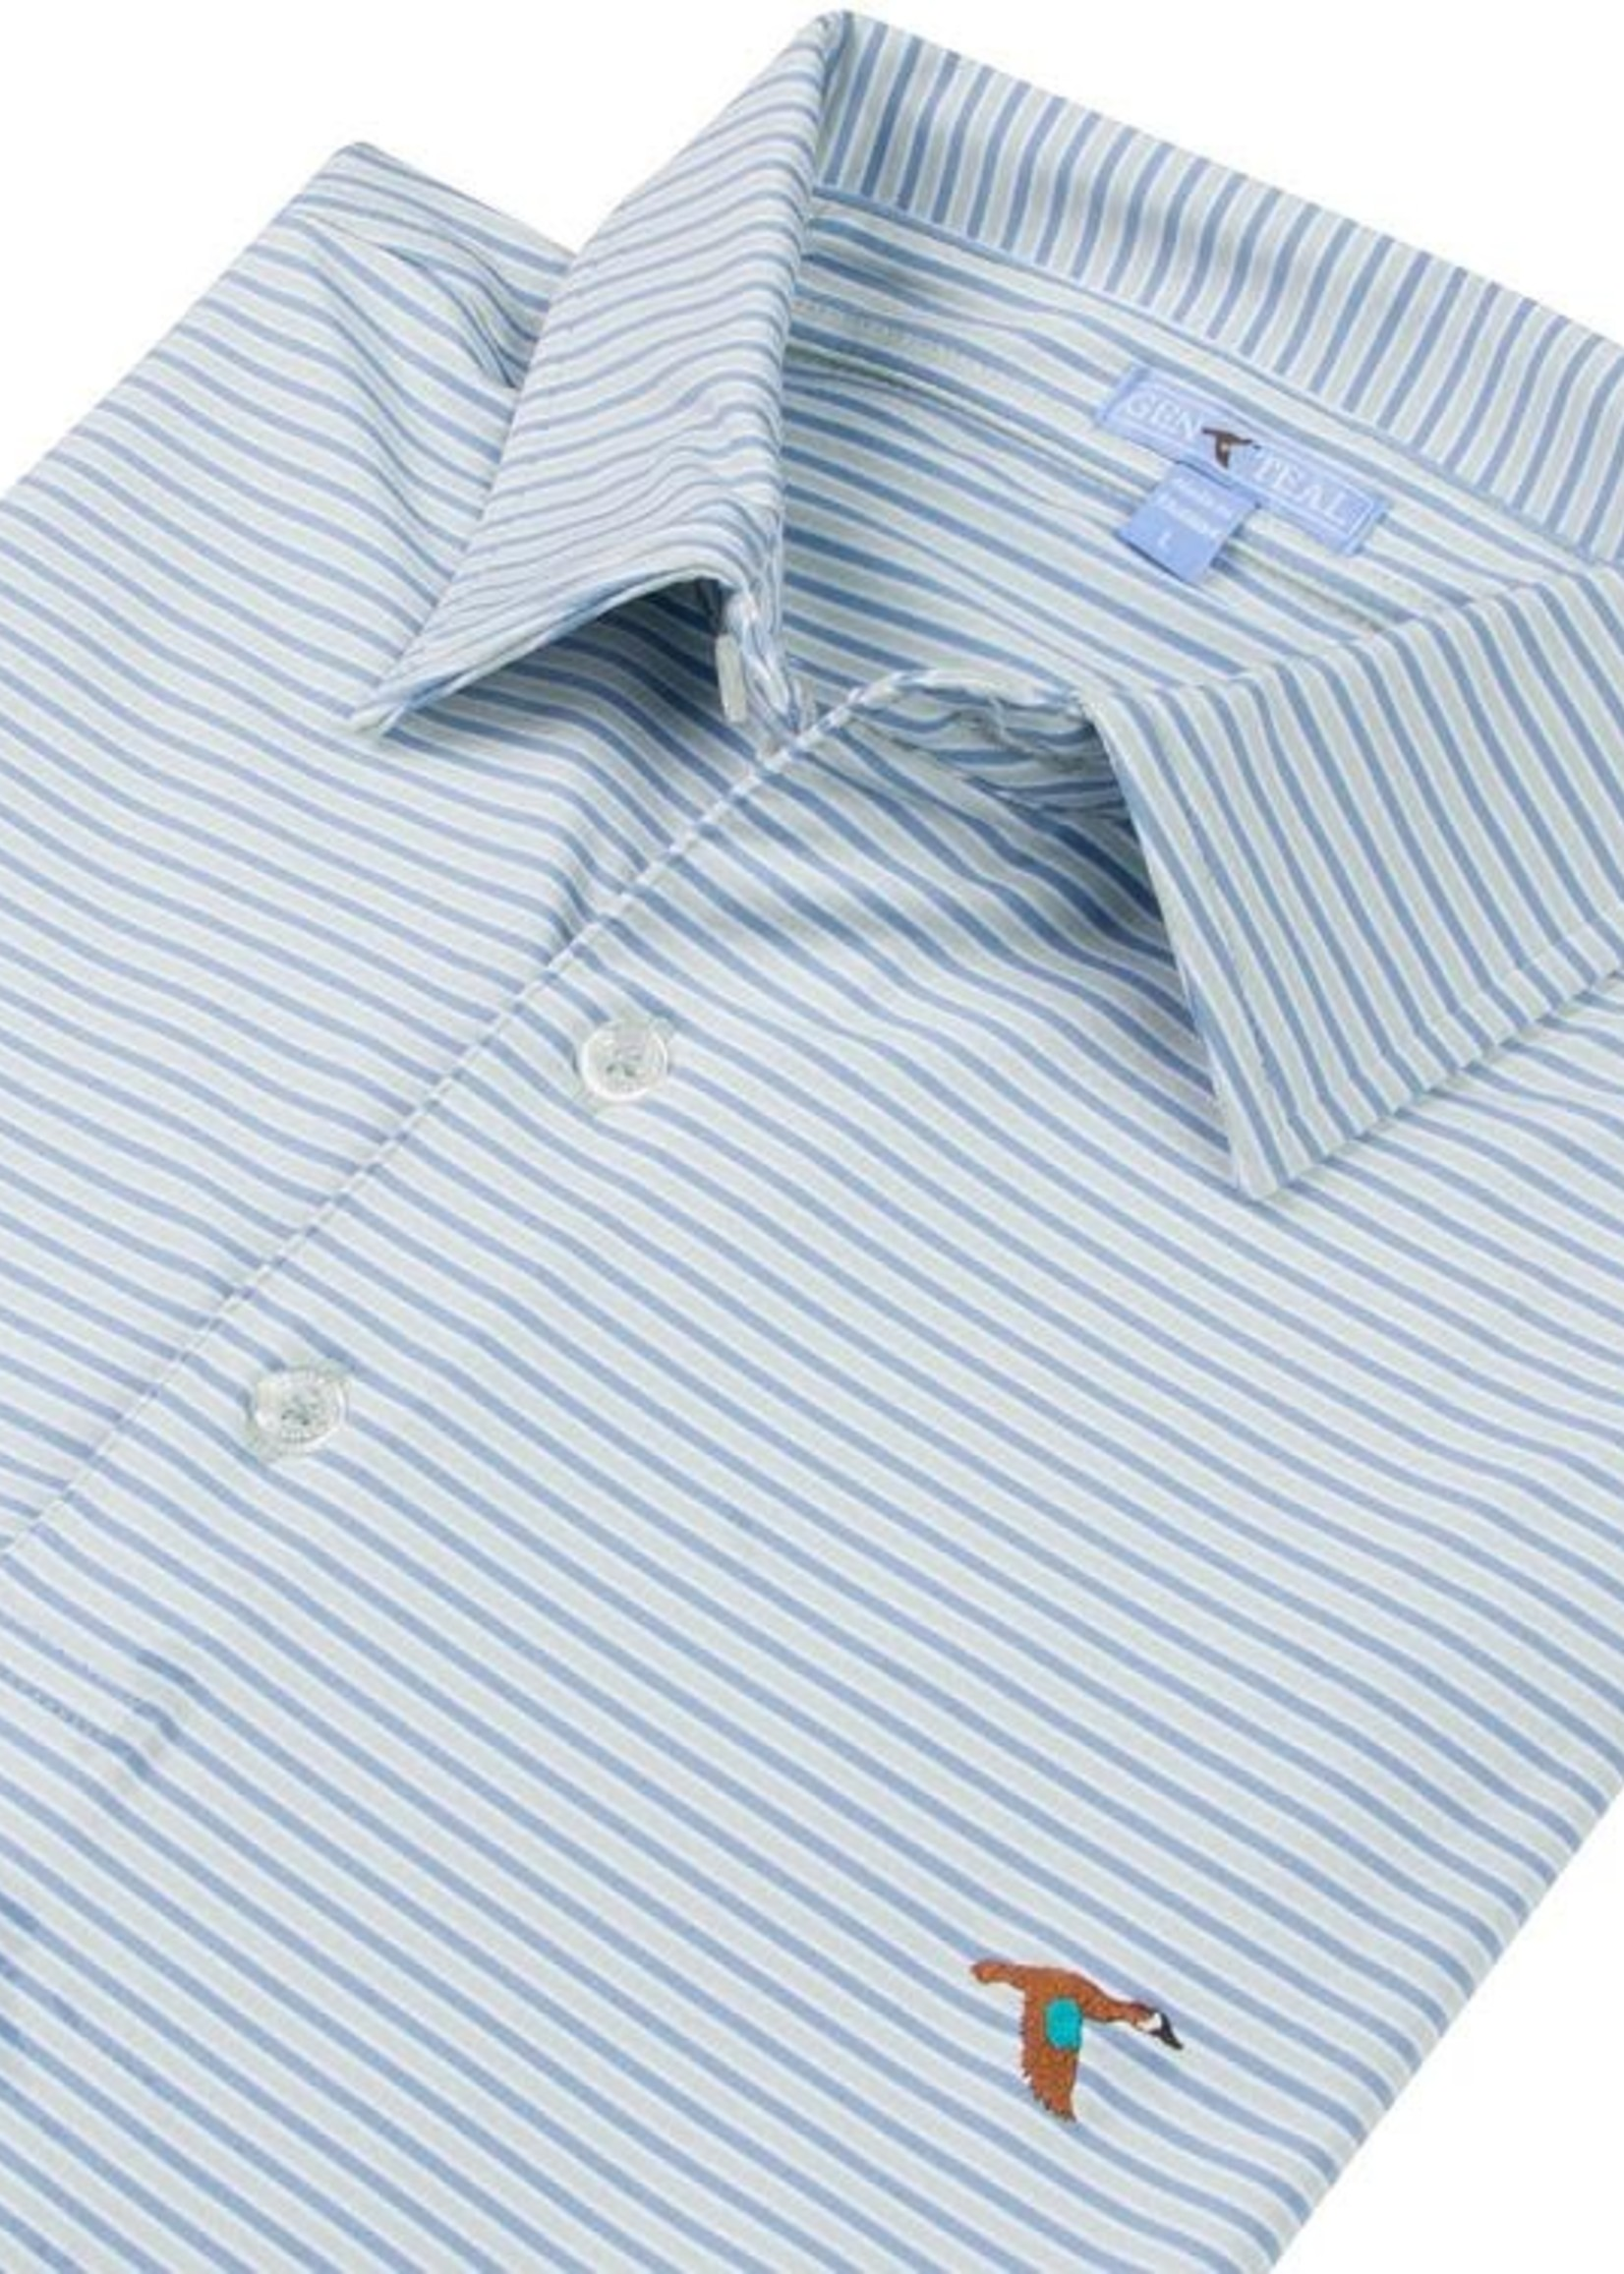 GenTeal Apparel Freeport Stripe Polo Seagrass